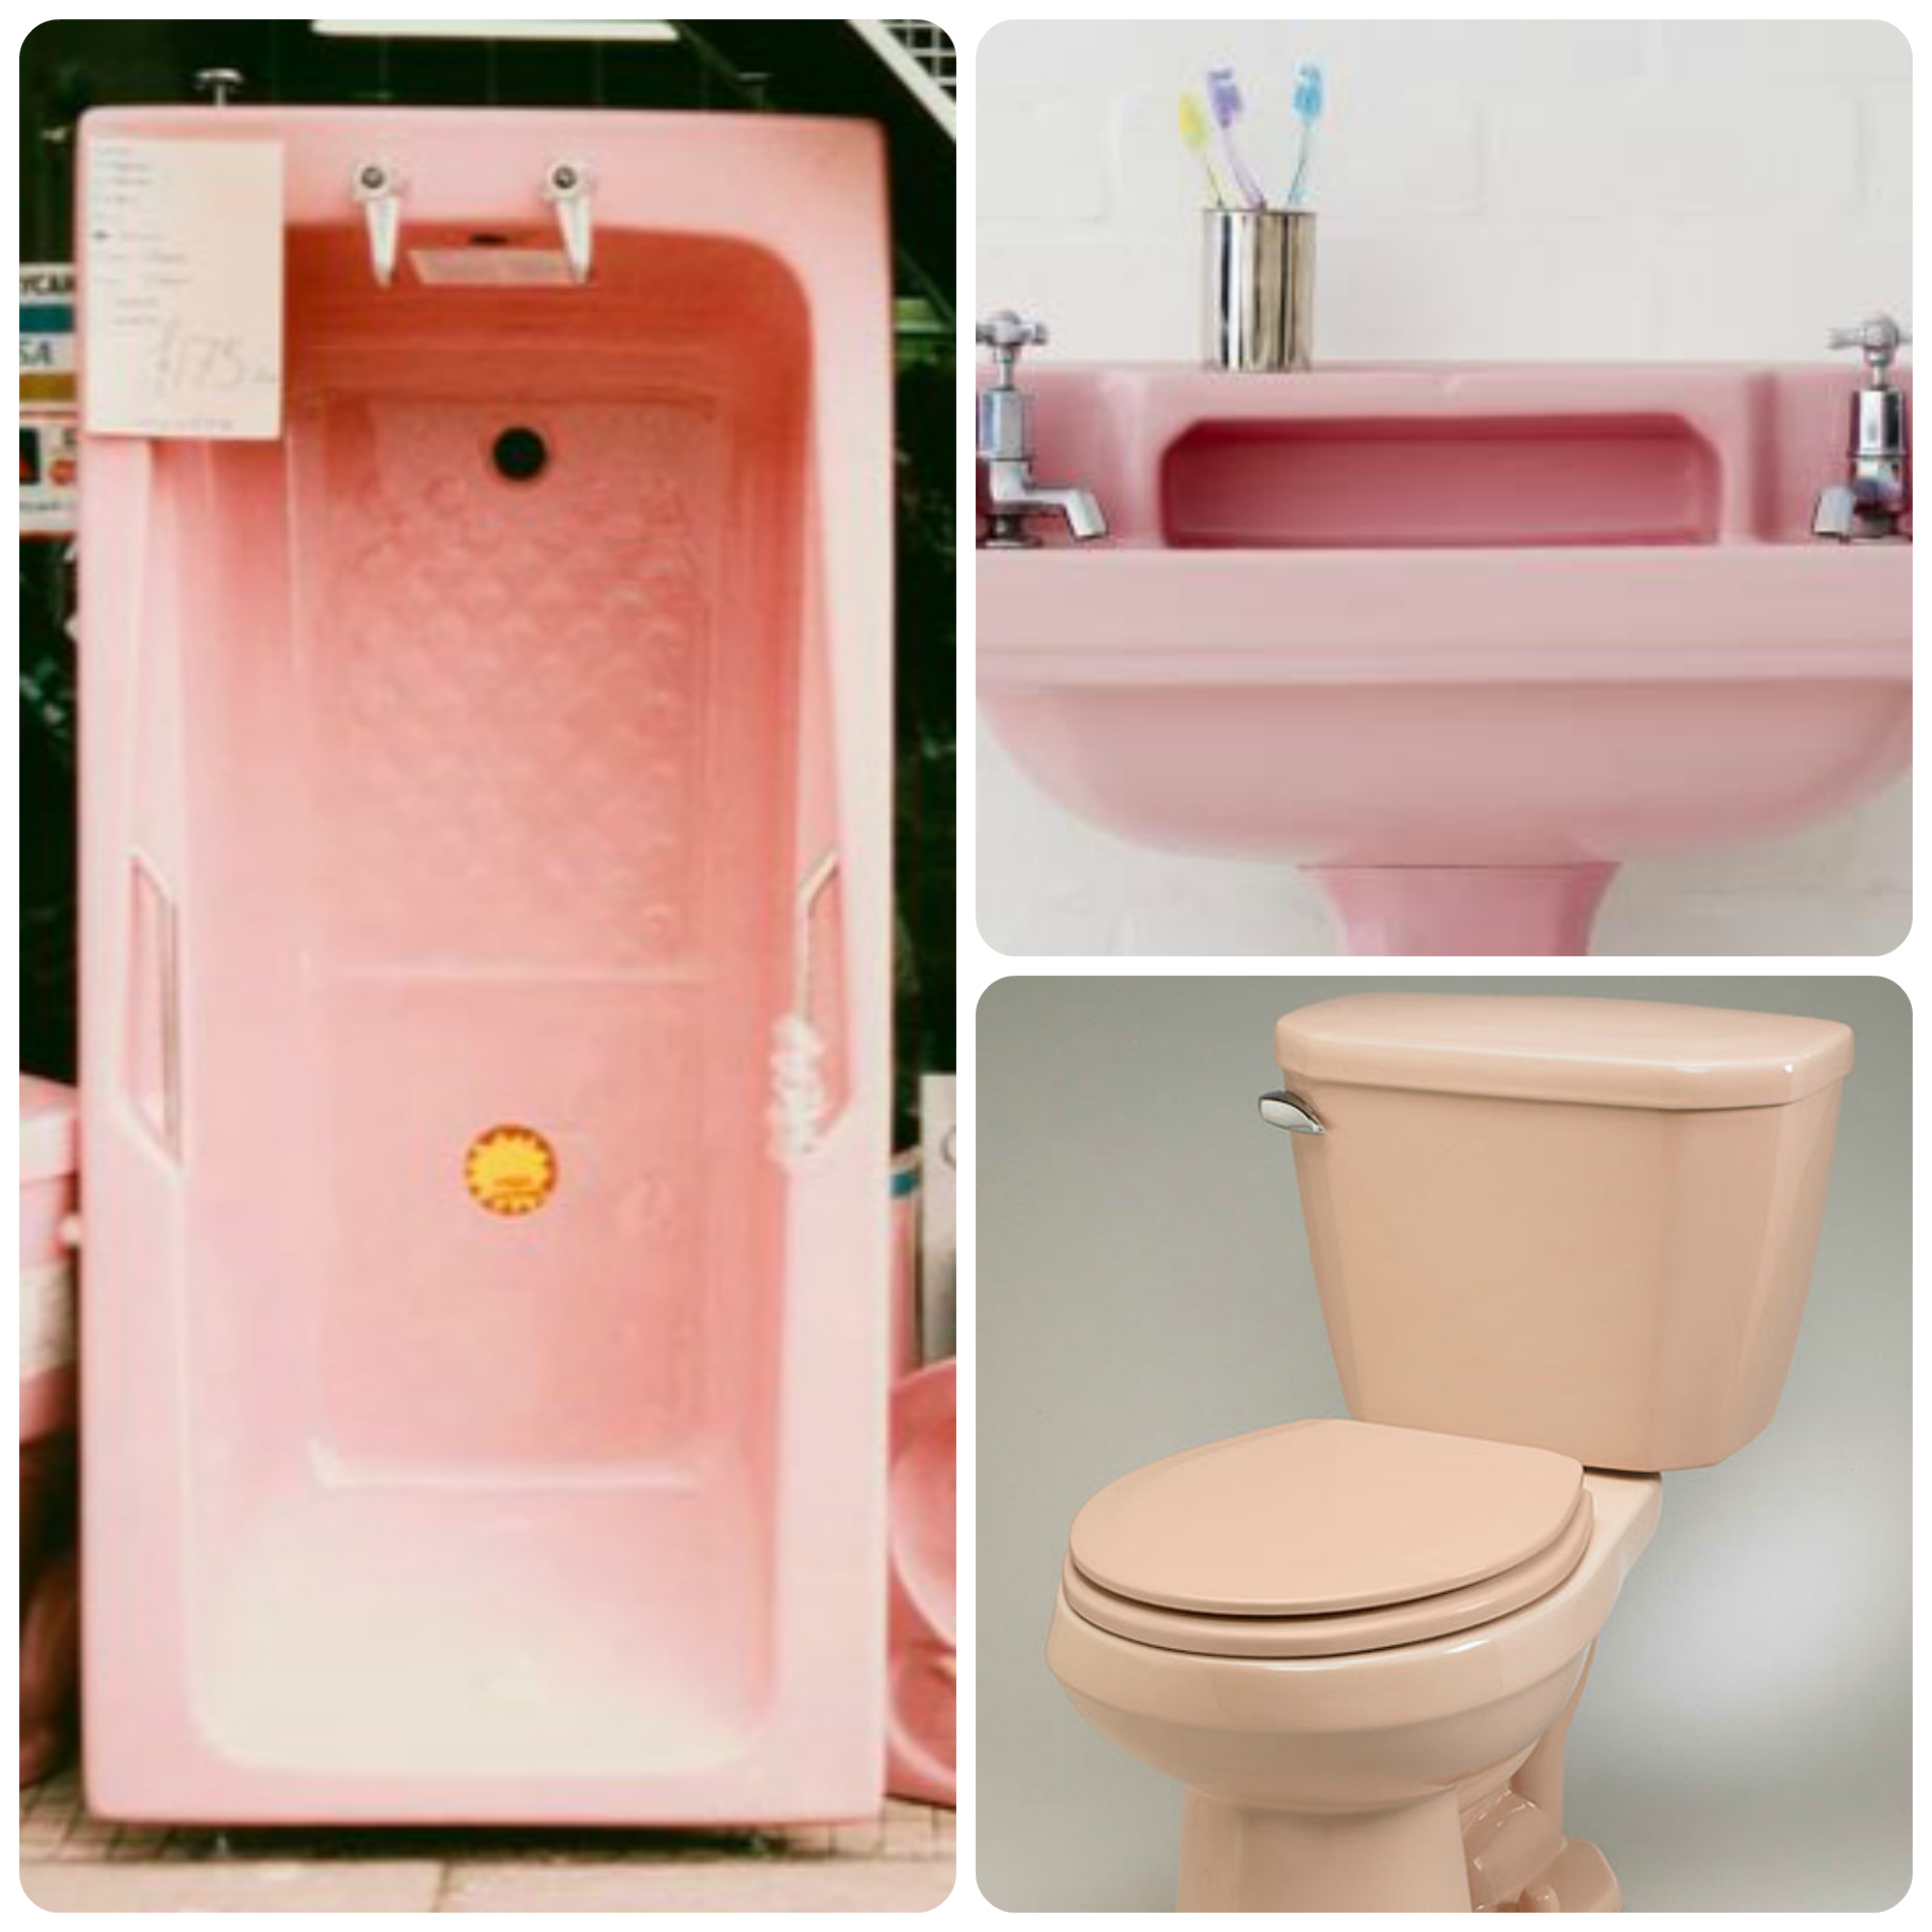 pink bath, sink and toilet